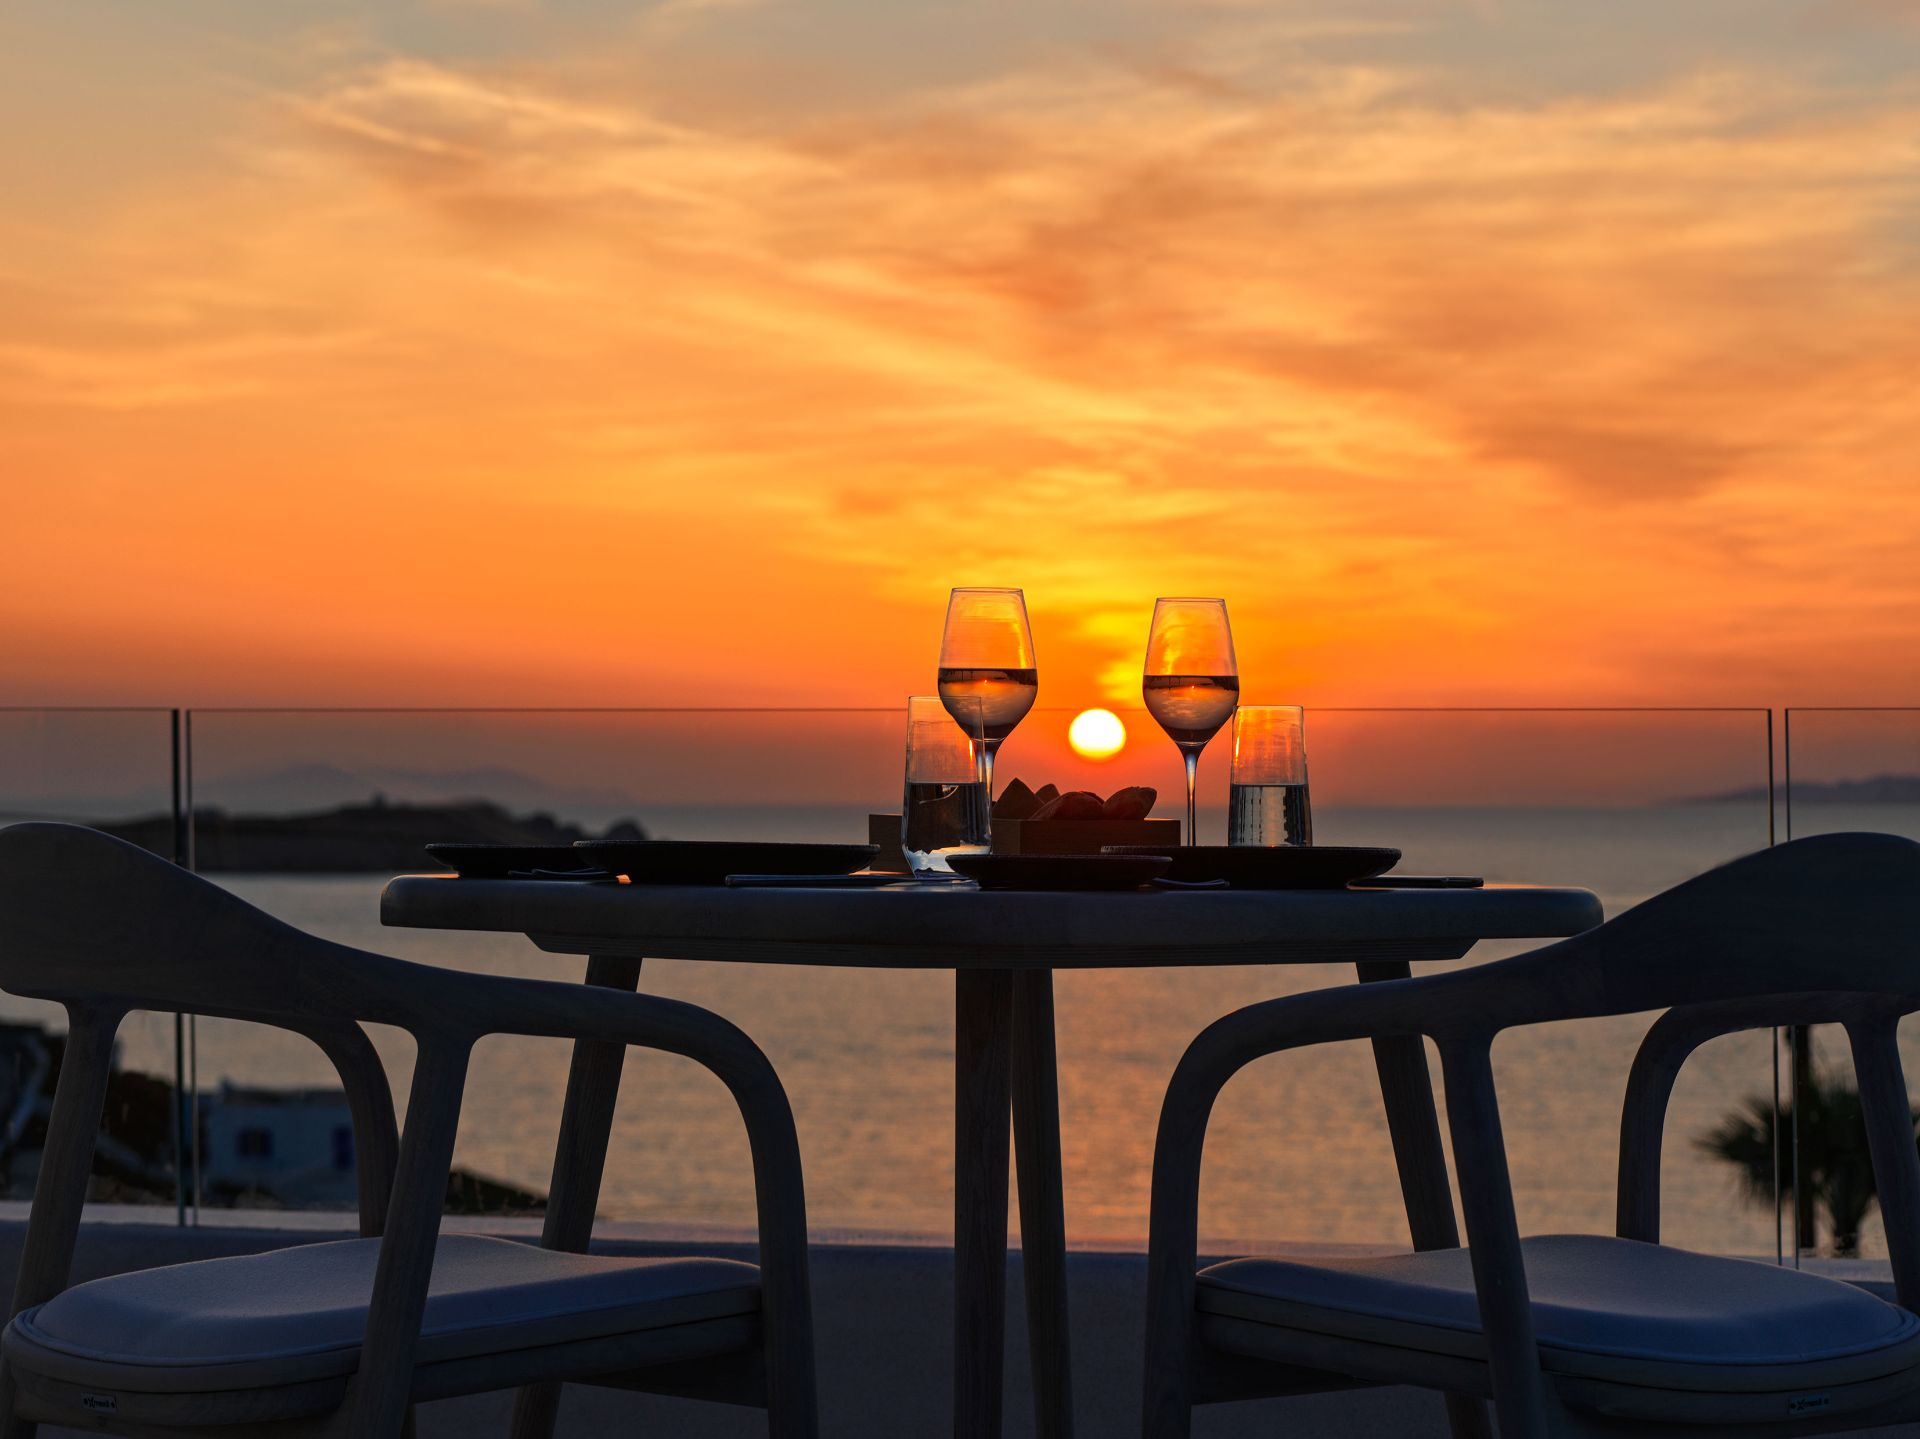 Dine In Mykonos Earth Suites And Get 10% Discount!